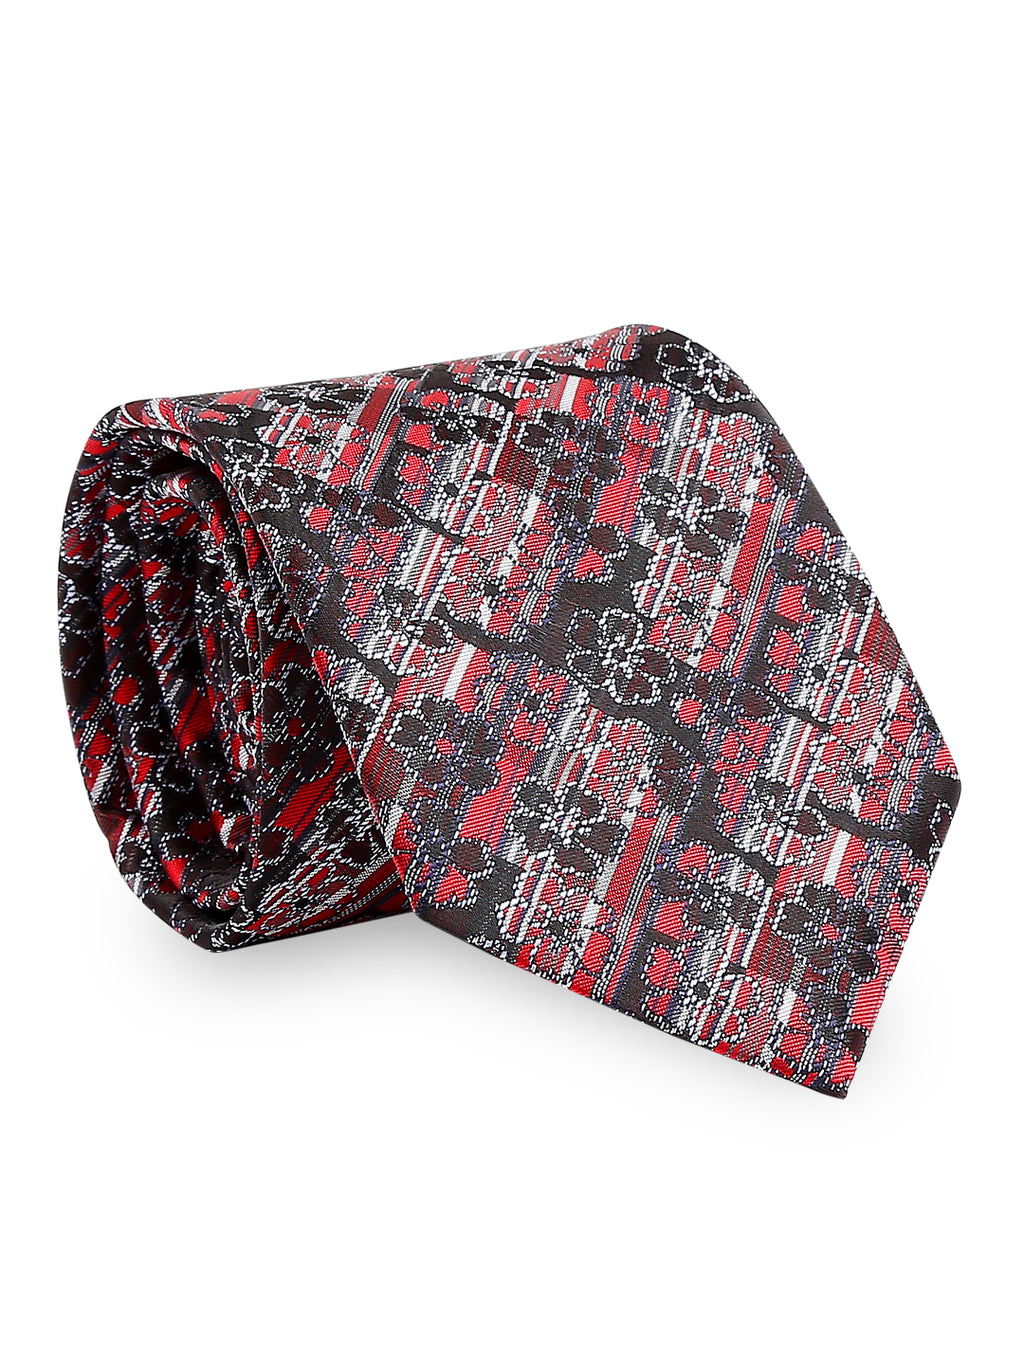 Zido Tie for Men TJQ287